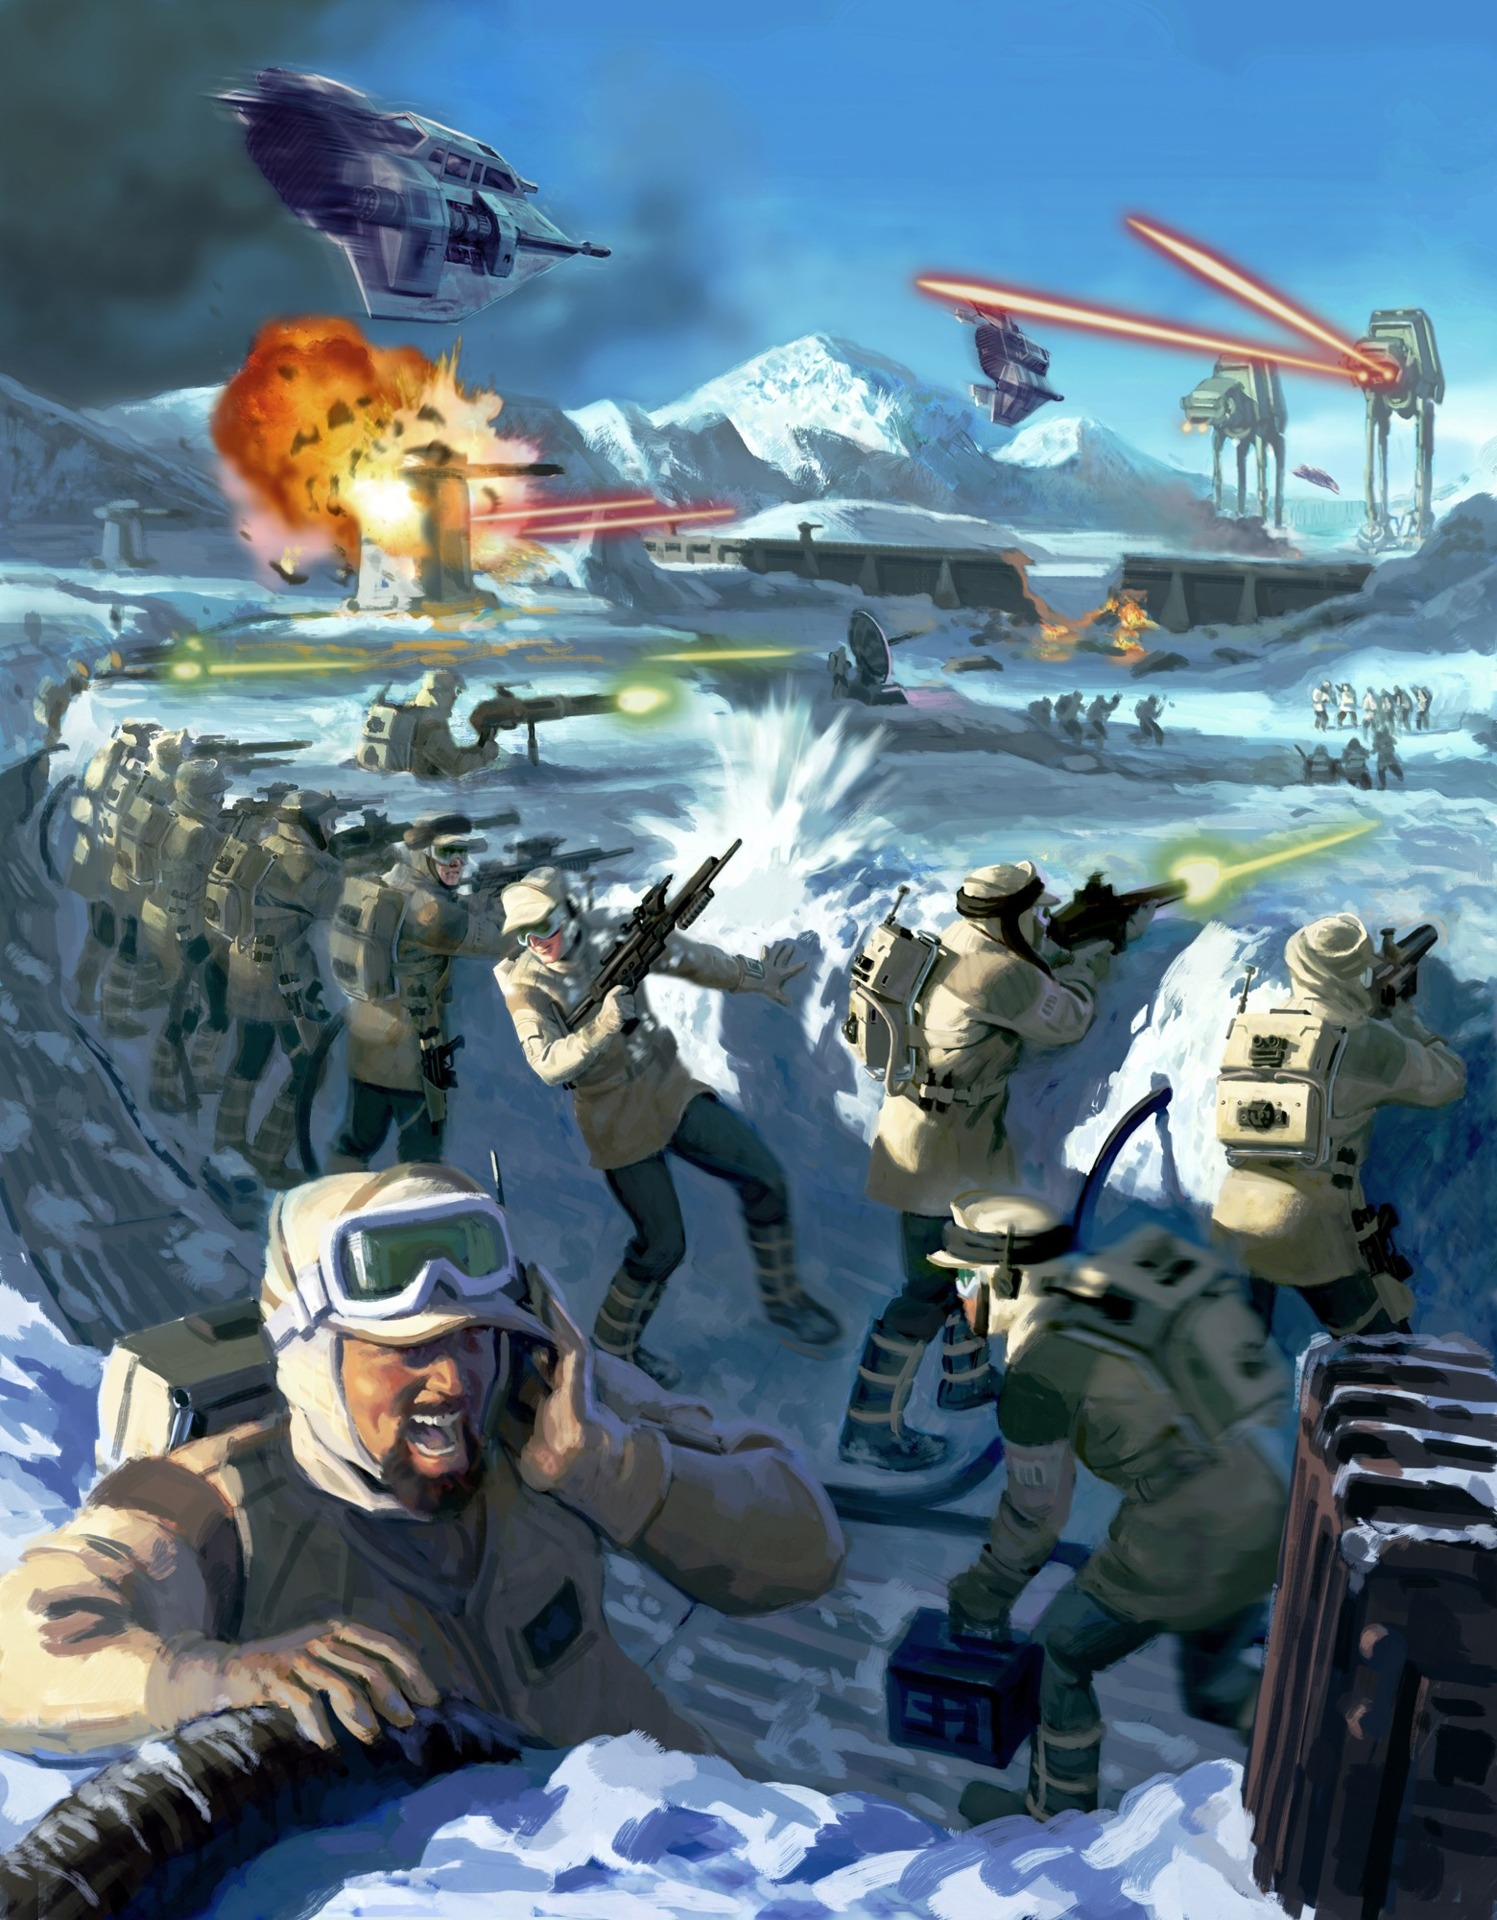 Rebel soldiers defend their base against Imperial AT-AT walkers.